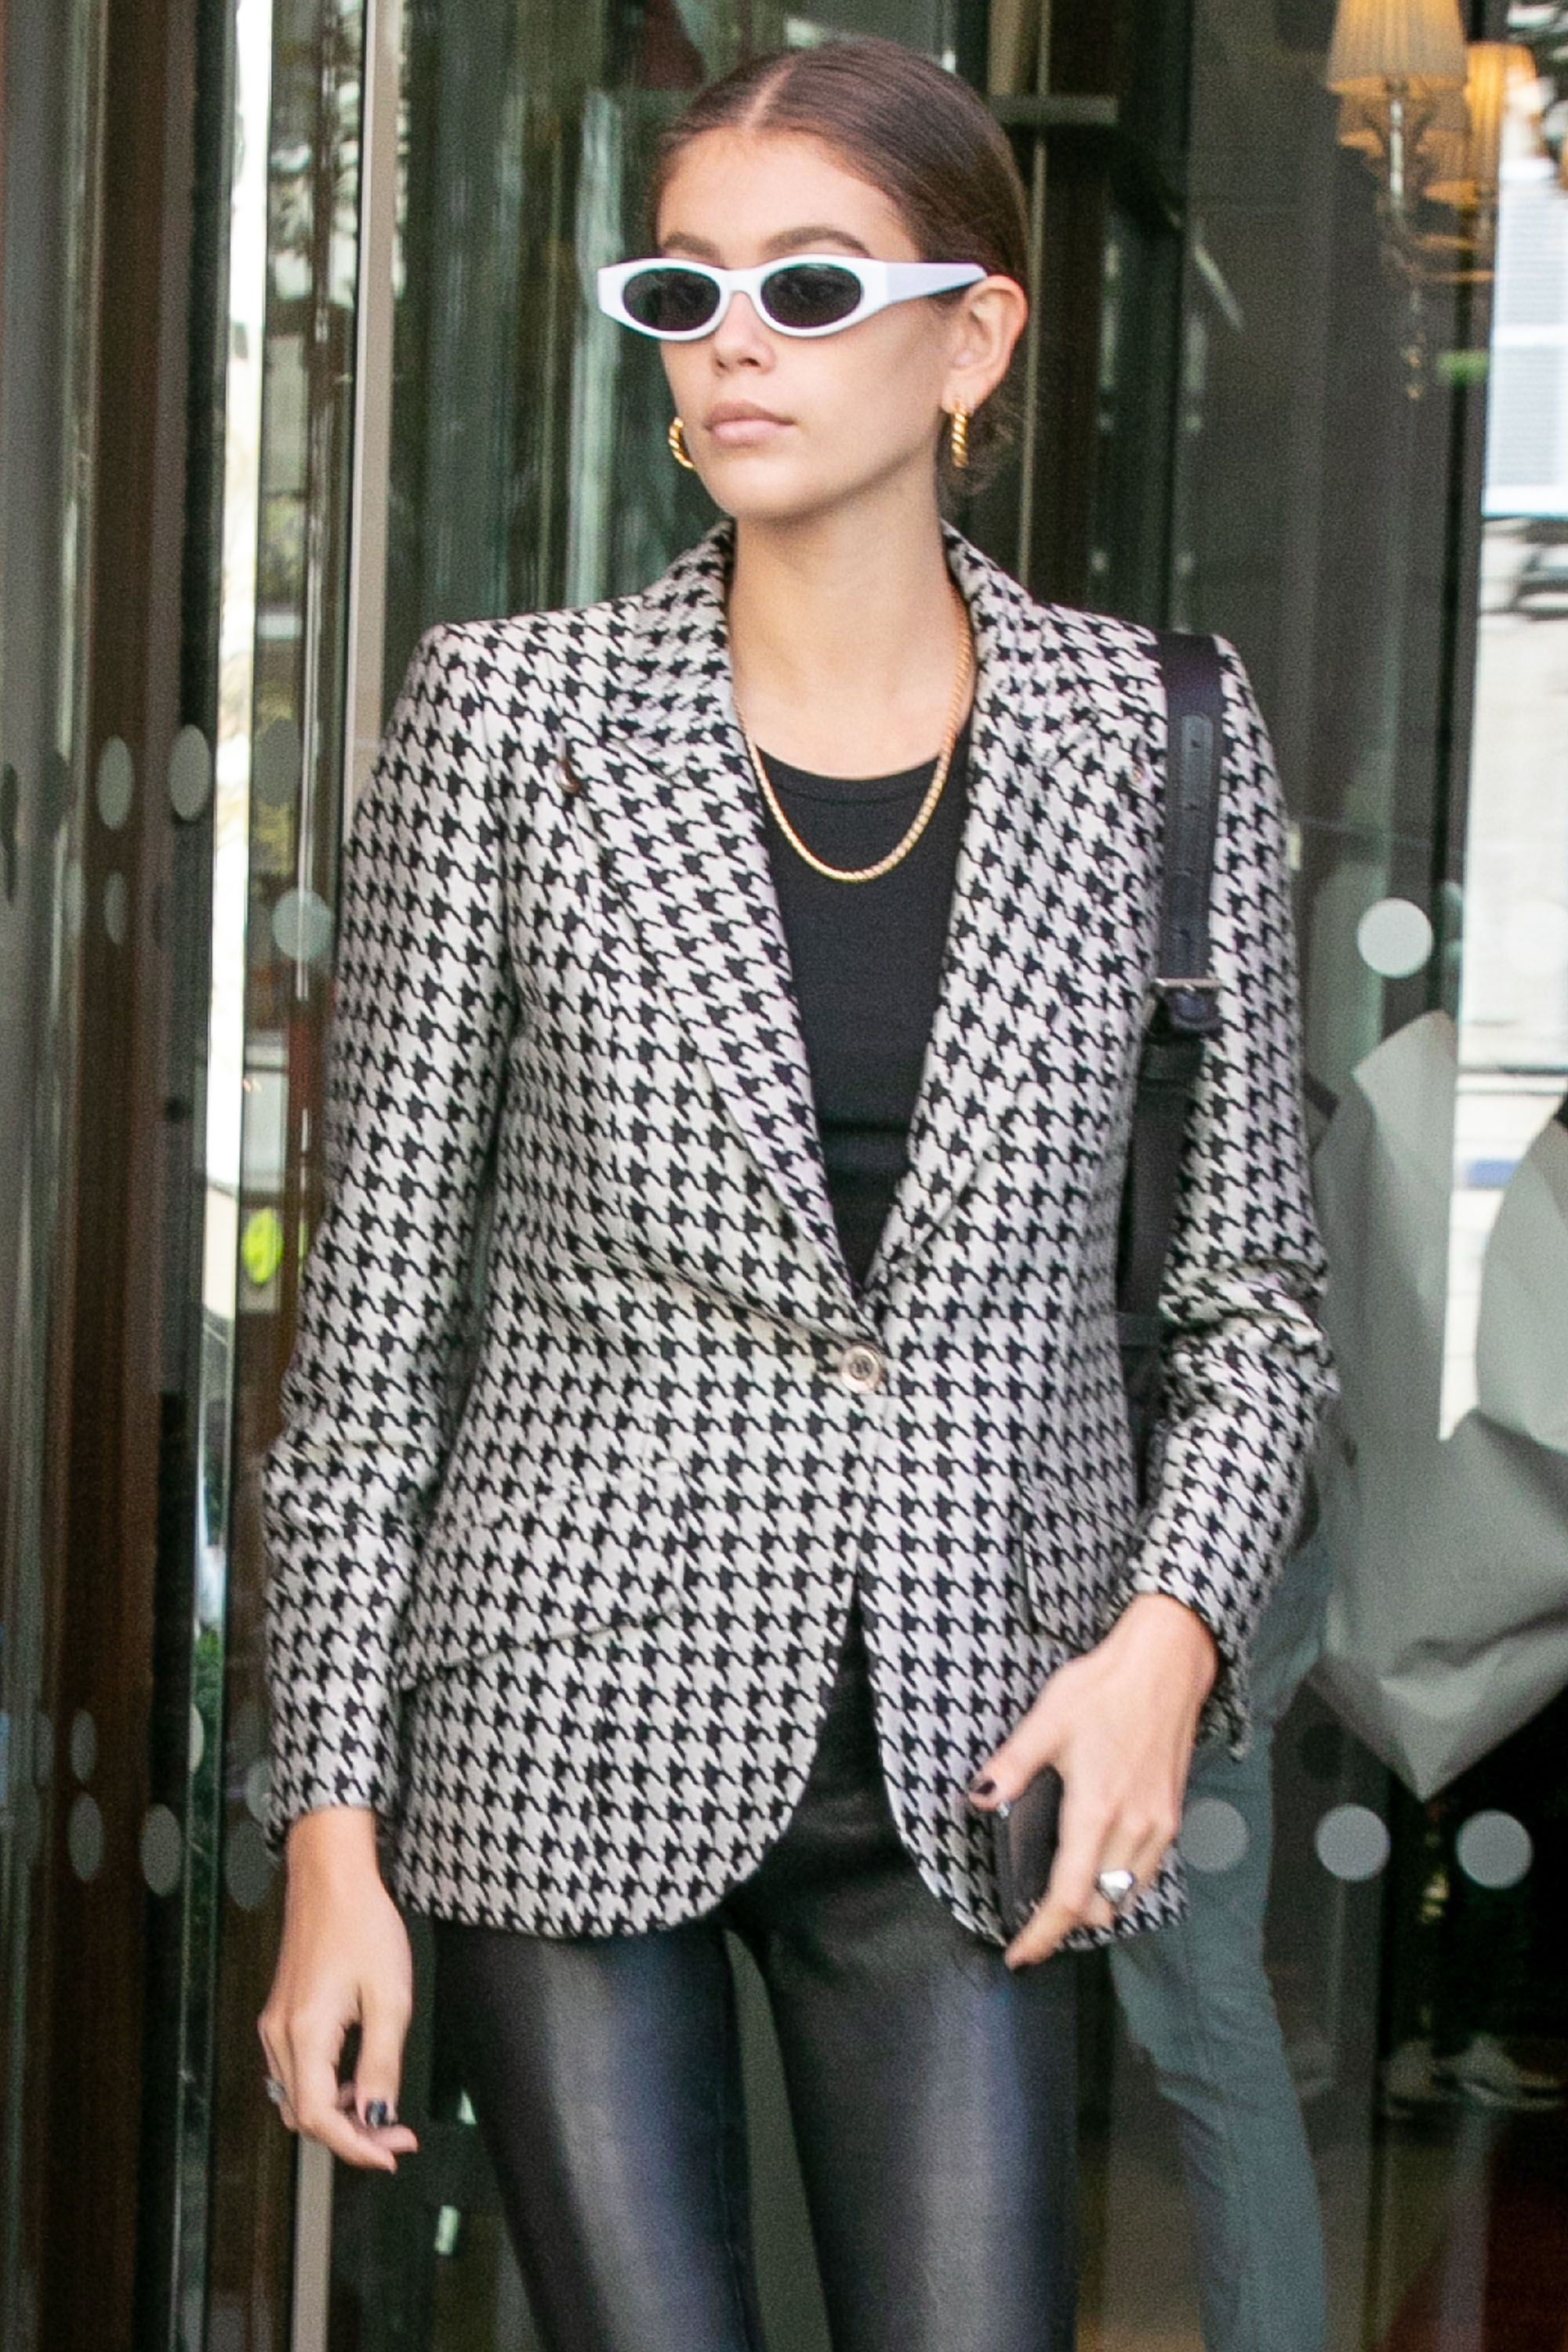 5bf2f442b20f7 Celebrity Style and Fashion Tips - Today's Style Secret for Harper's BAZAAR